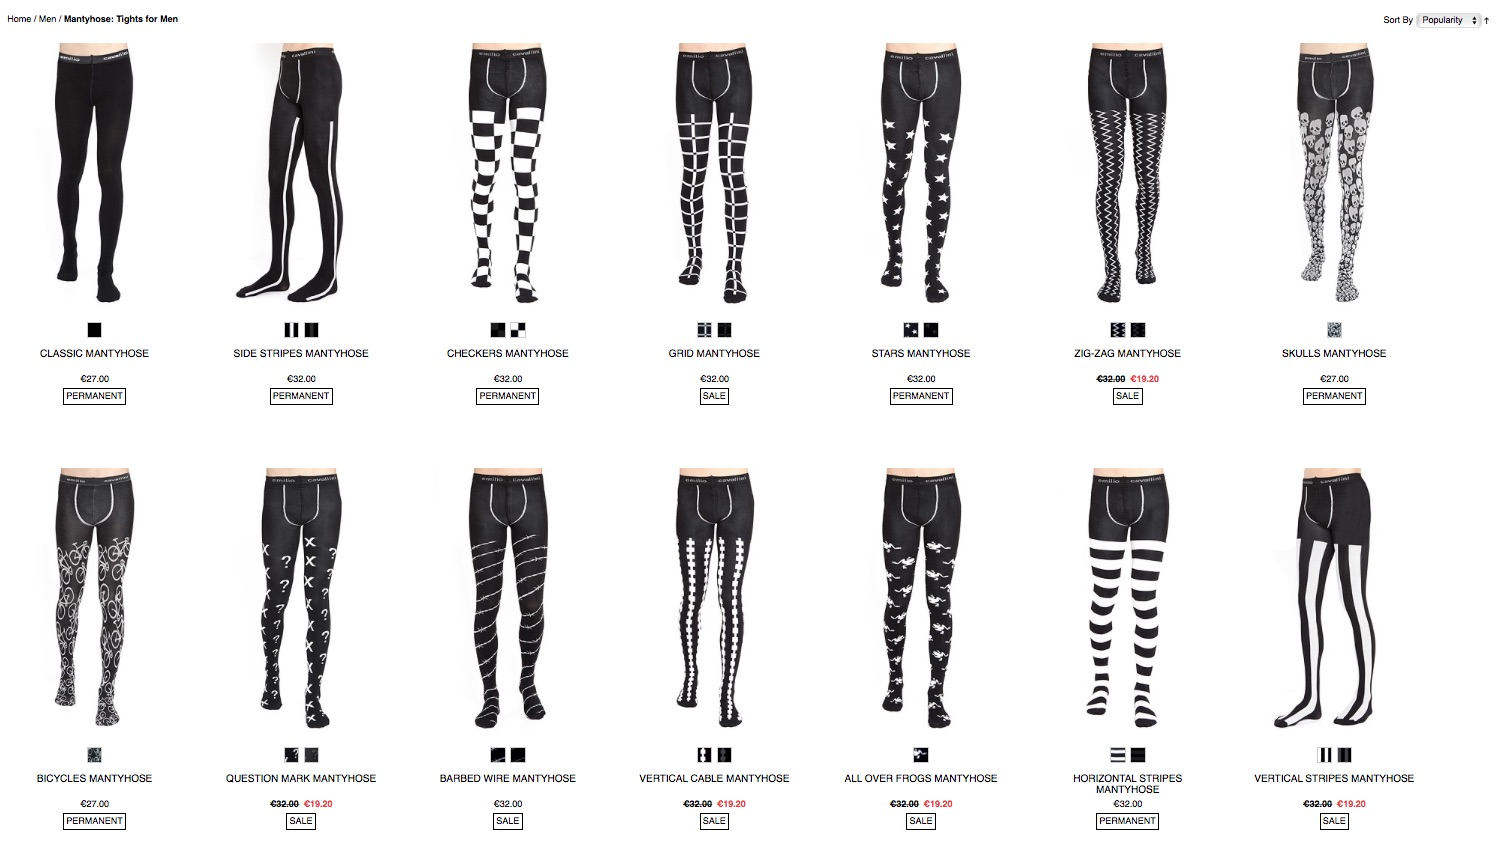 50285ce6bd27a The full range of Emilio Cavallini tights for men can be viewed here.